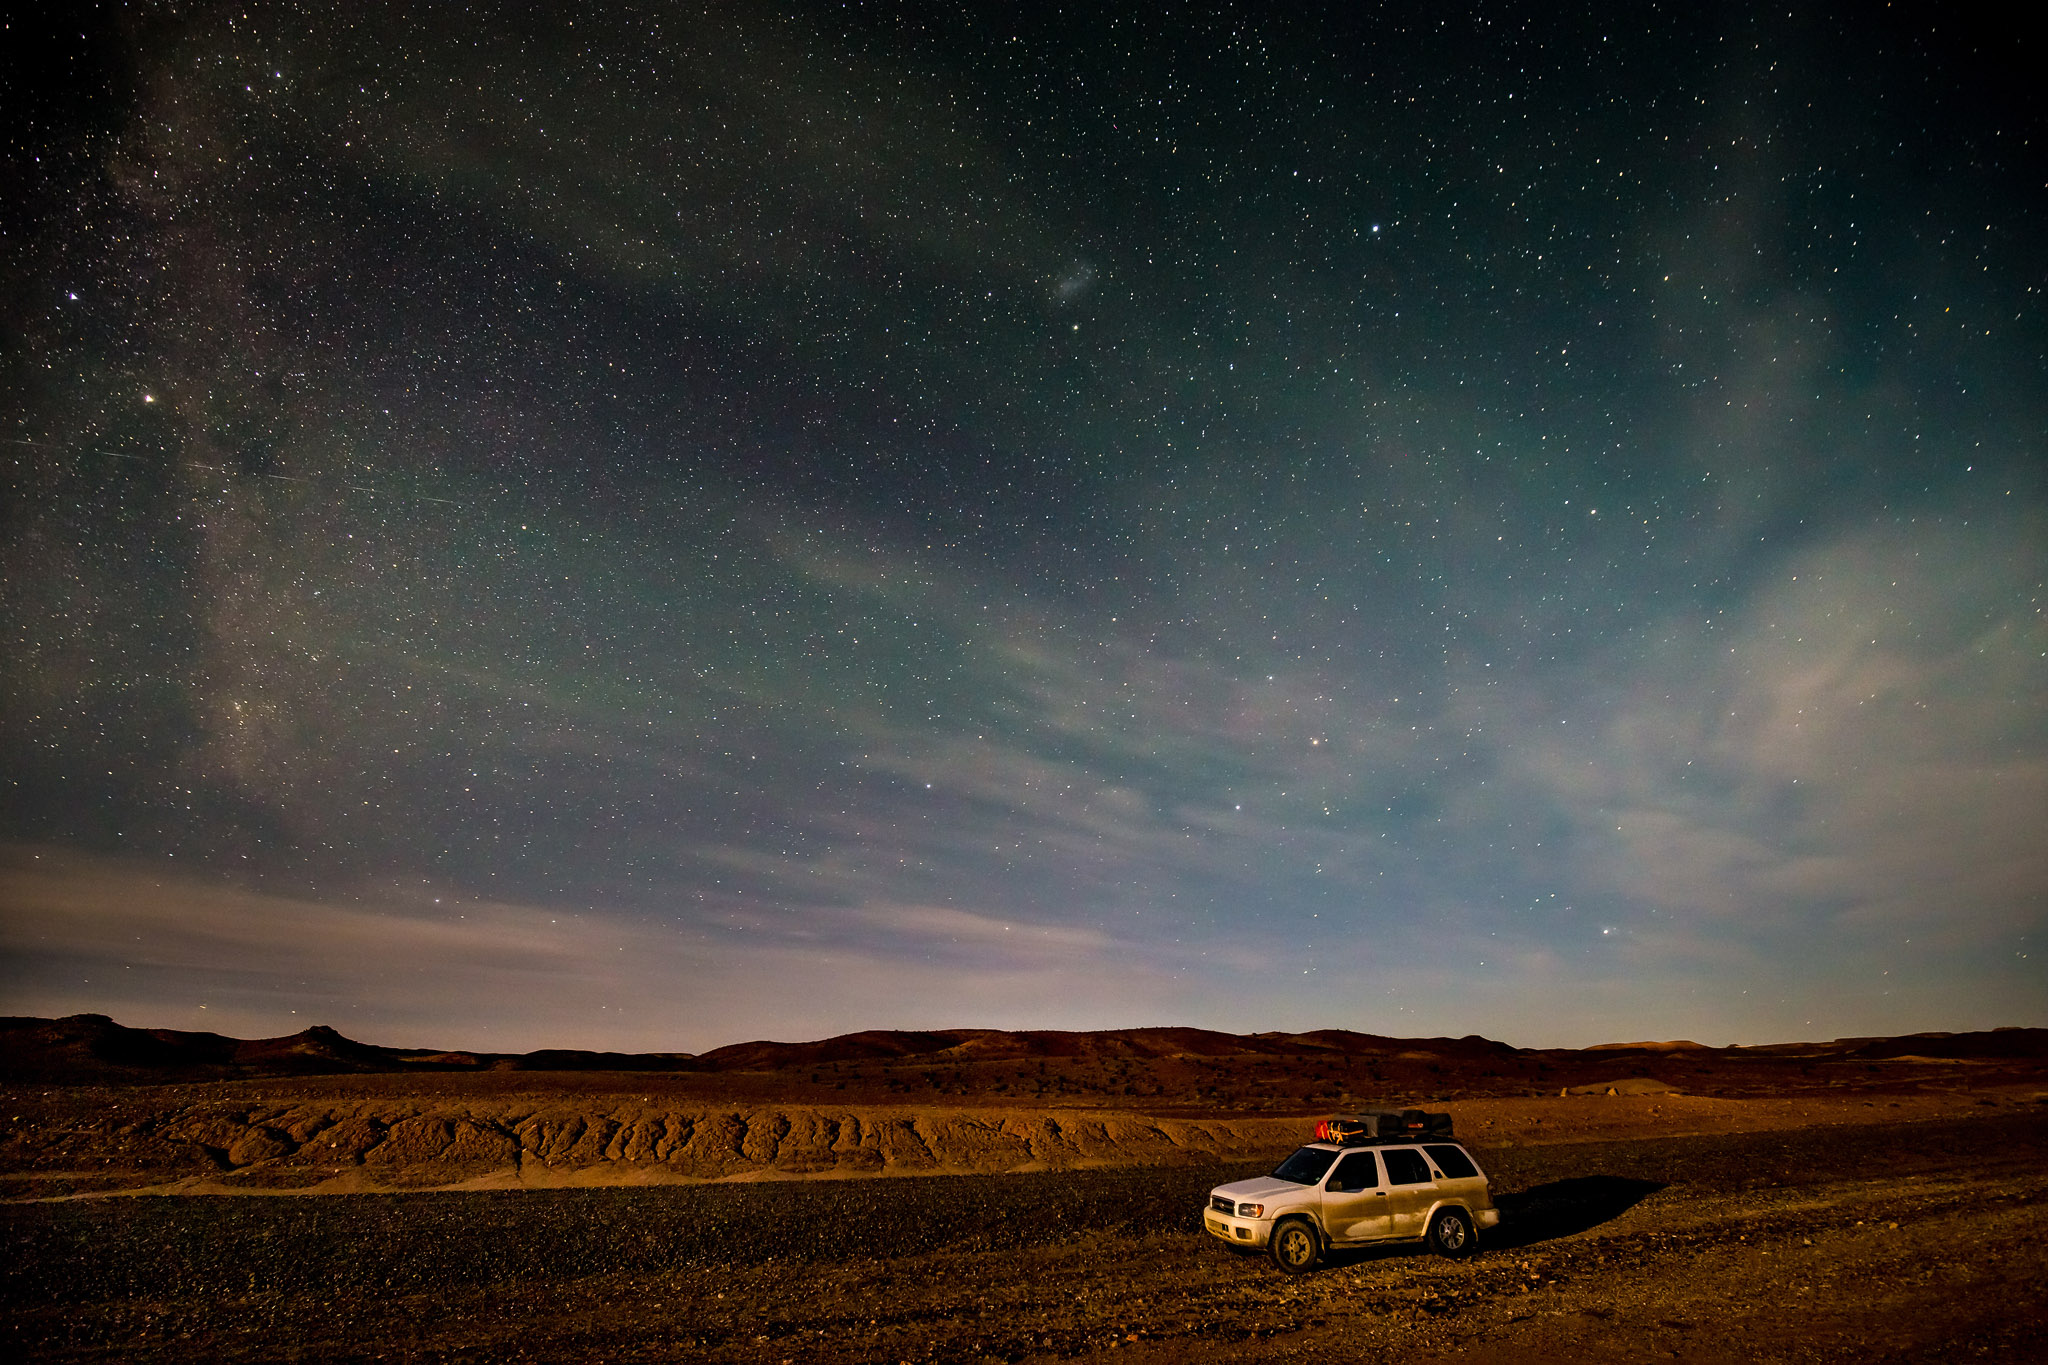 wedding-travellers-argentina-coast-petrified-forest-night-sky-milky-way-incredible-colors-stars